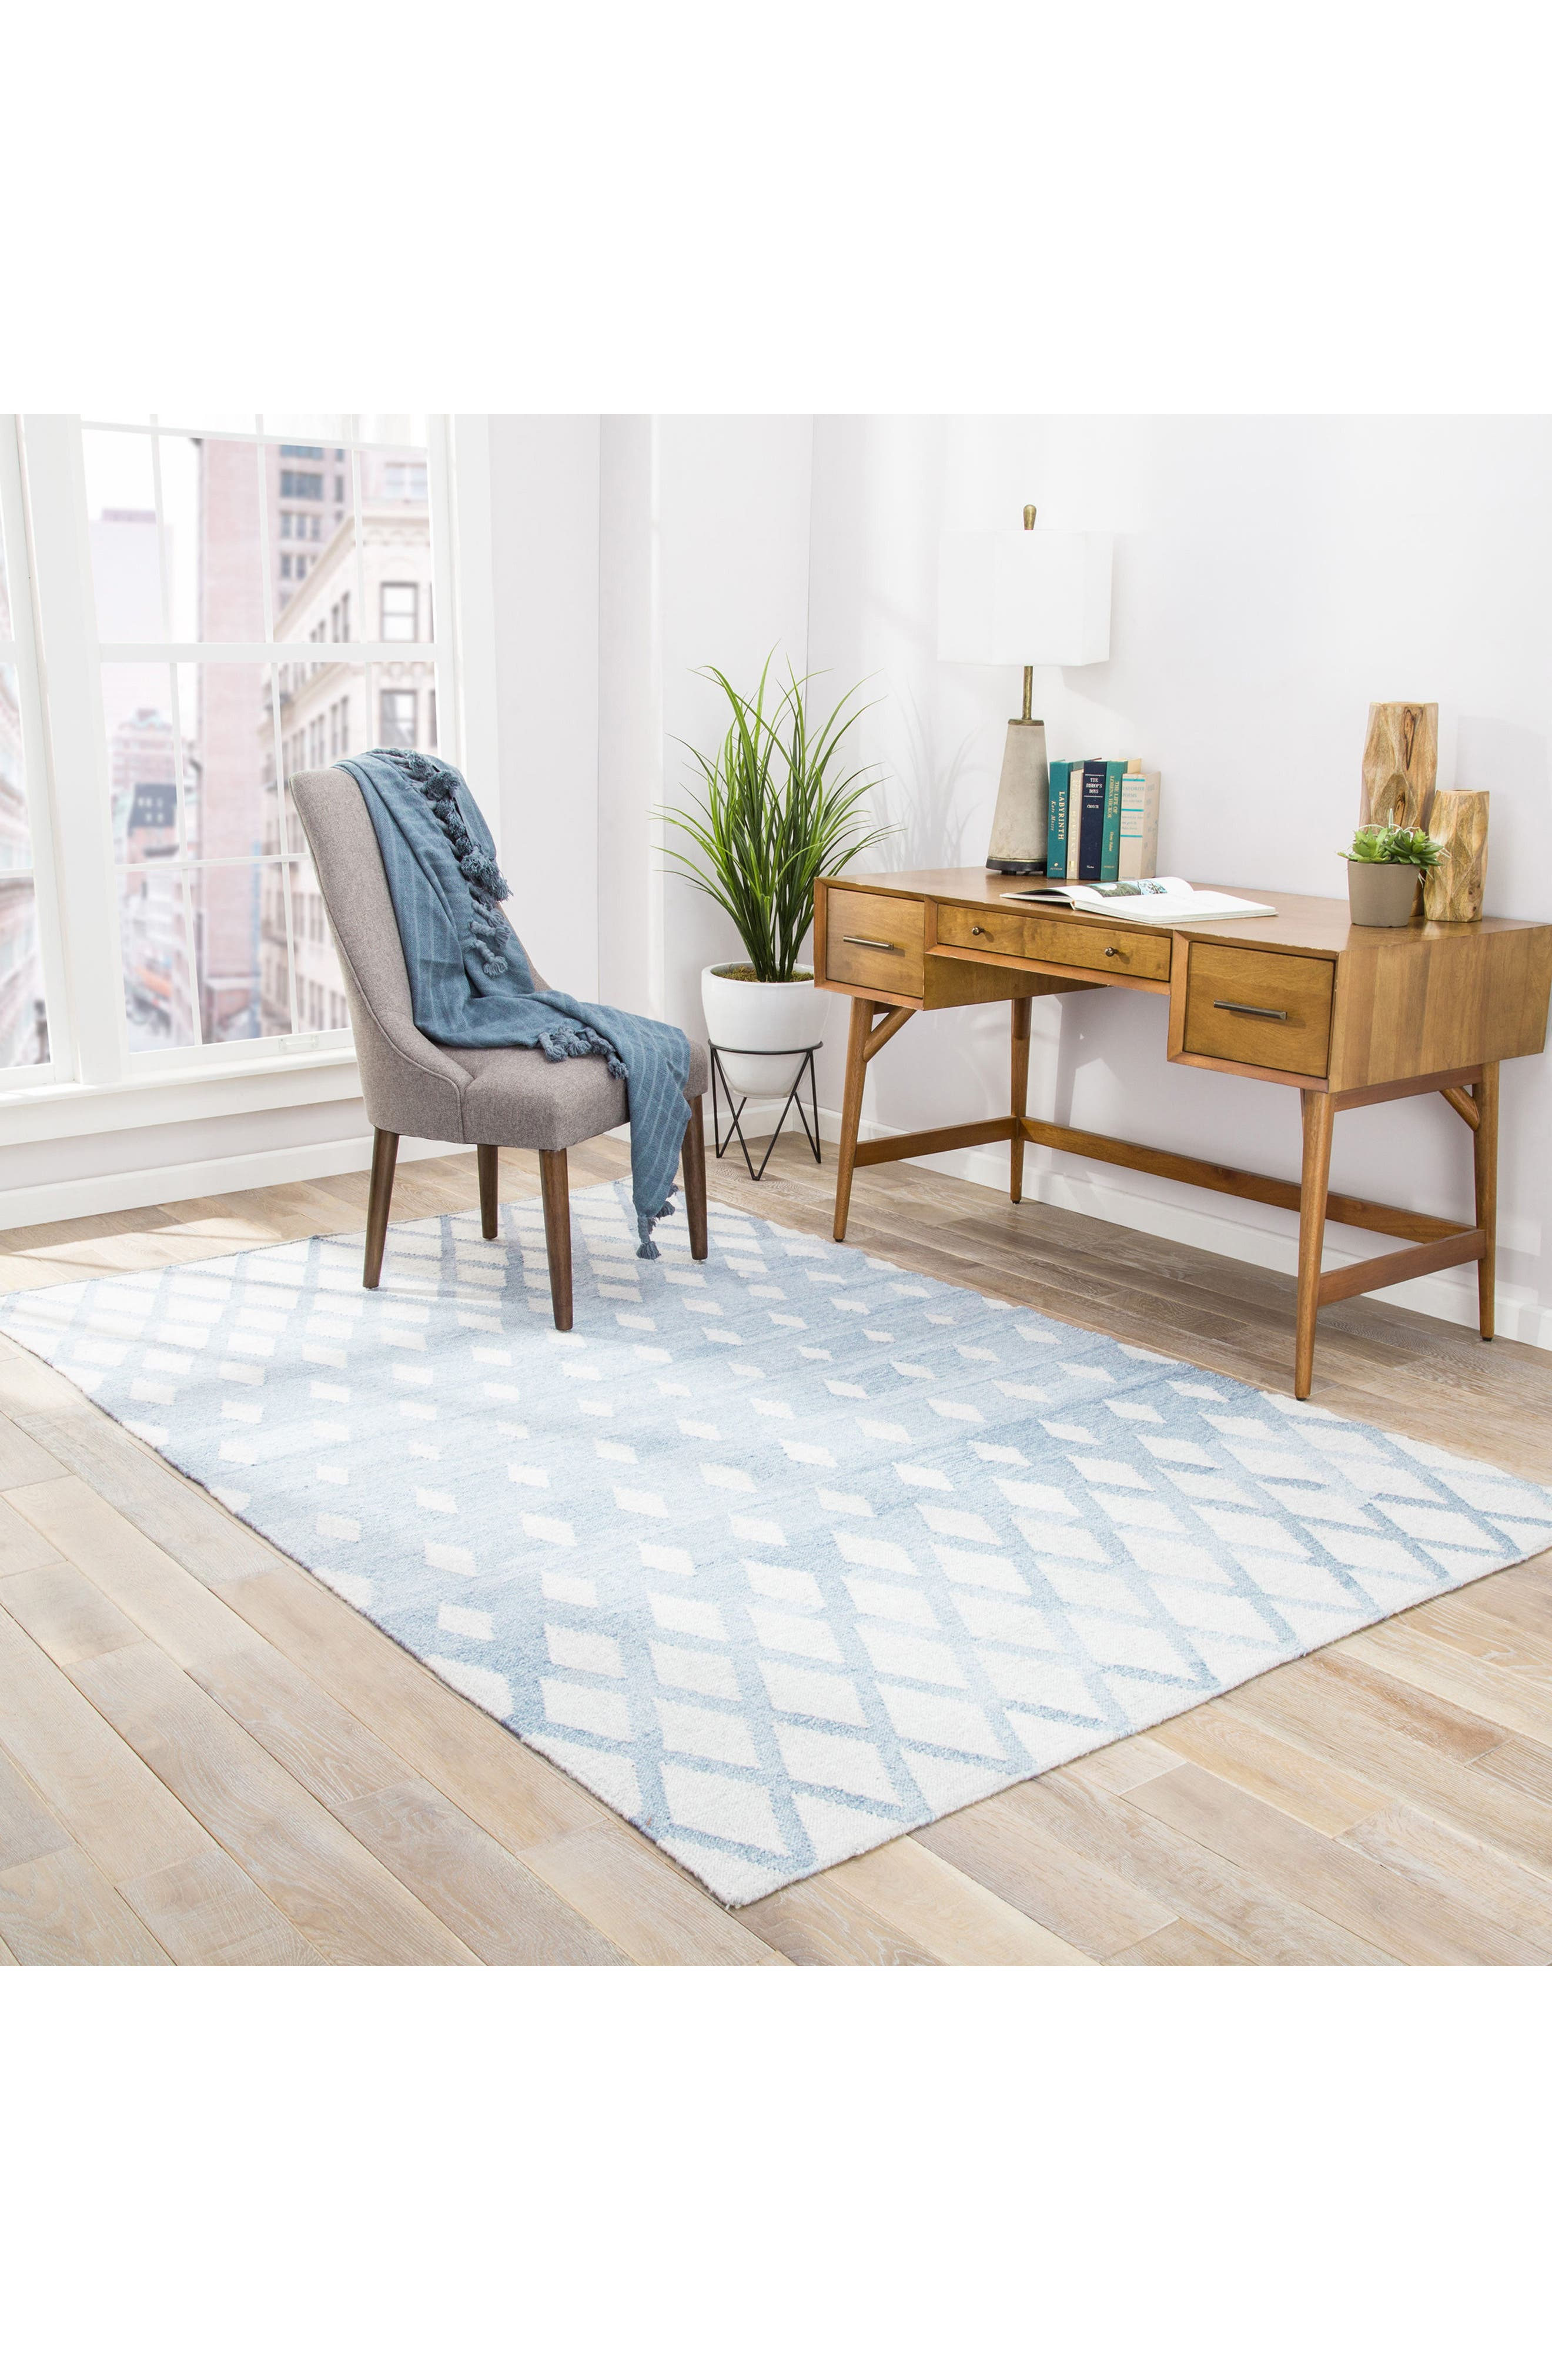 Pyramid Blocks Rug,                             Alternate thumbnail 4, color,                             Faded Denim/ Oatmeal